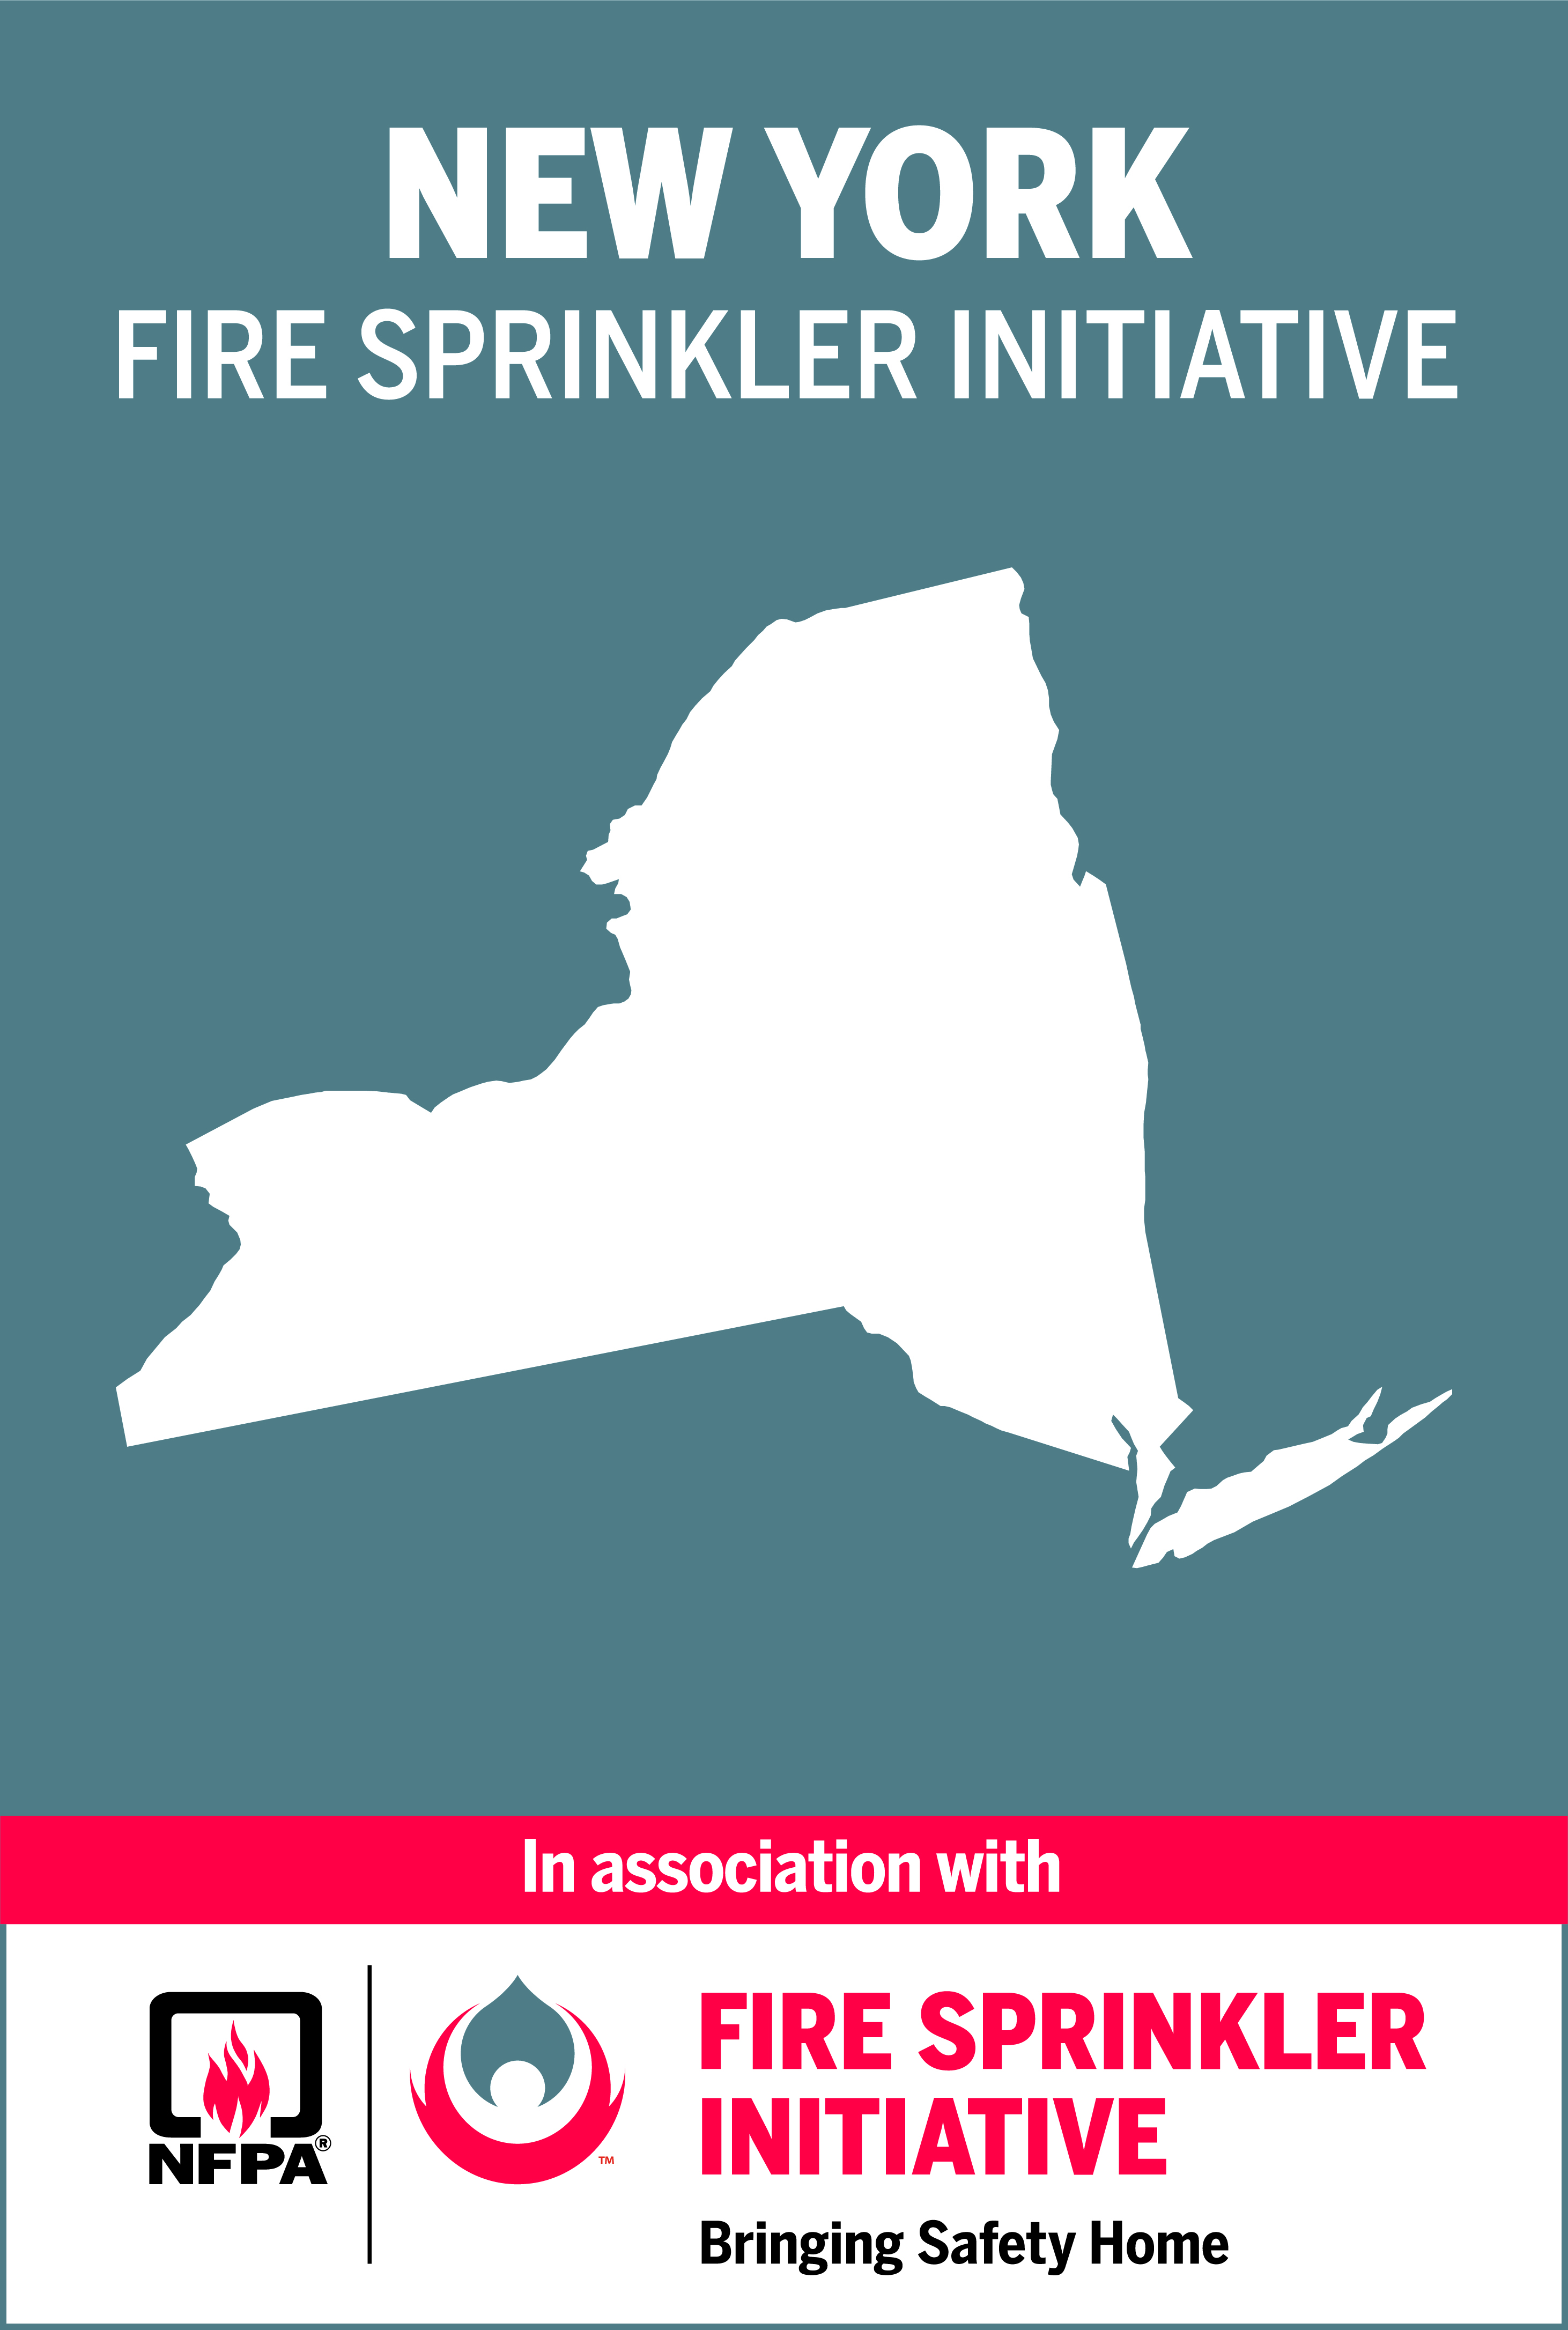 New York Fire Sprinkler Initiative